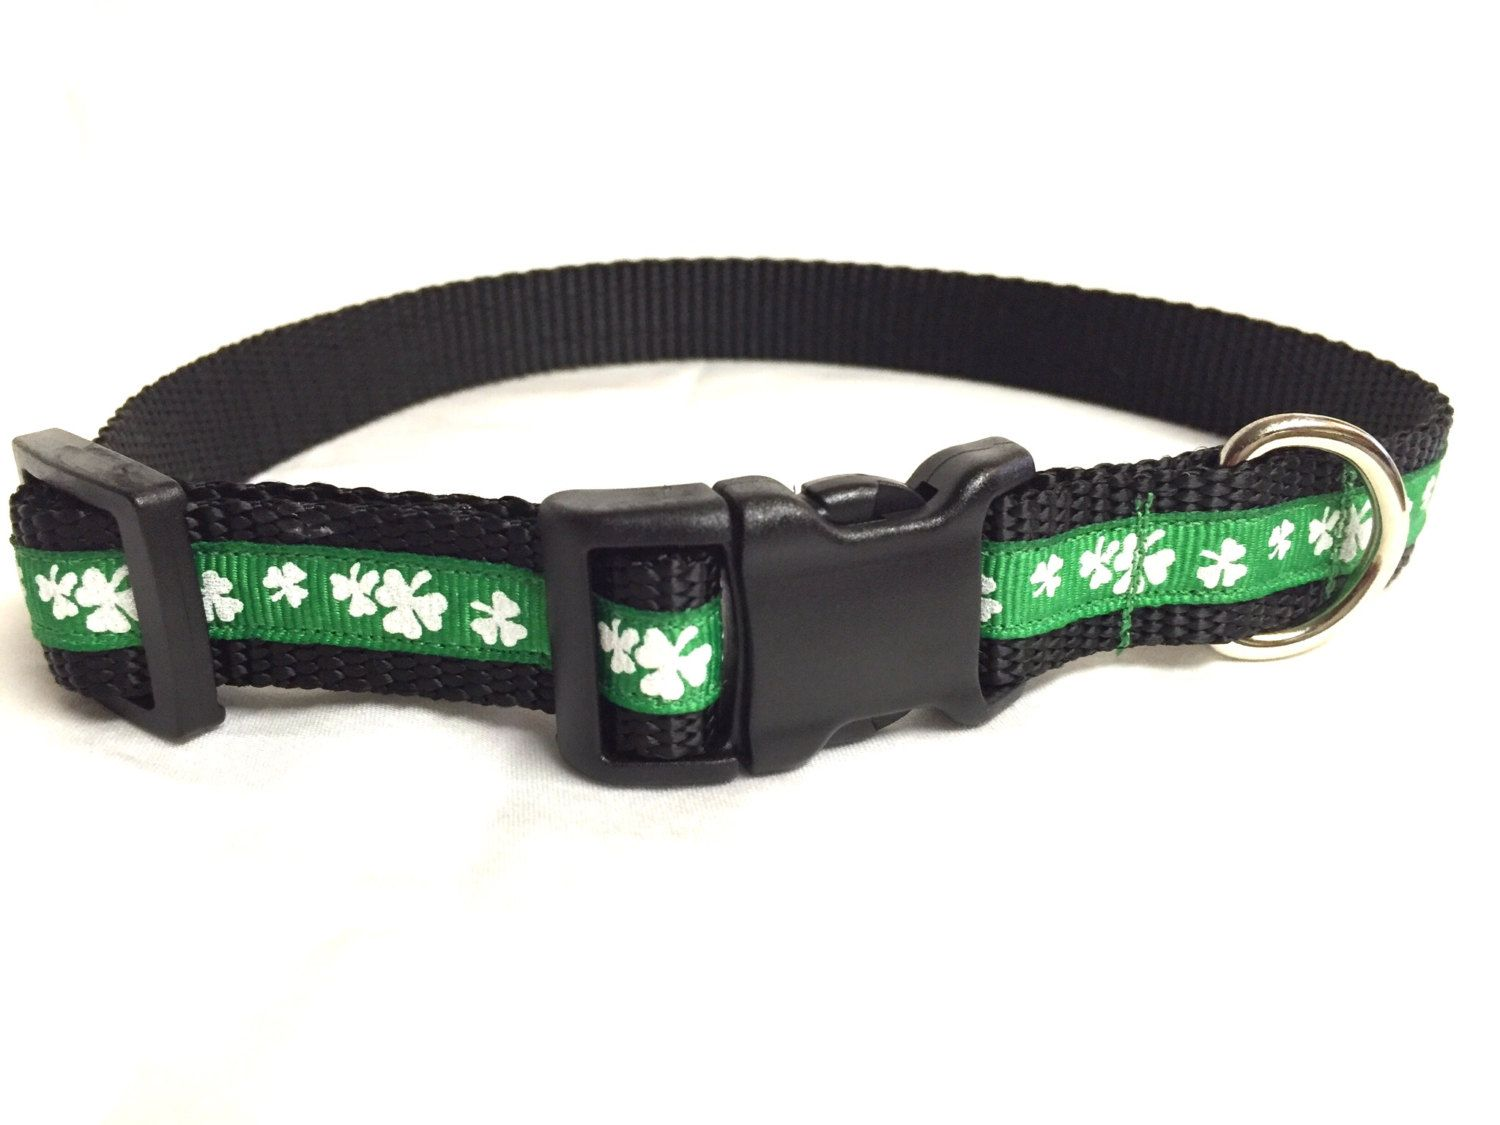 Dog collar-Shamrock dog collar-four leaf clover-green dog collar-St Patrick's dog collar-holiday collar-adjustable collar-handmade collar #Etsy #Favorite #EtsyFav #Share #EtsyShop Shared by #BaliTribalJewelry http://etsy.me/1sDZ302